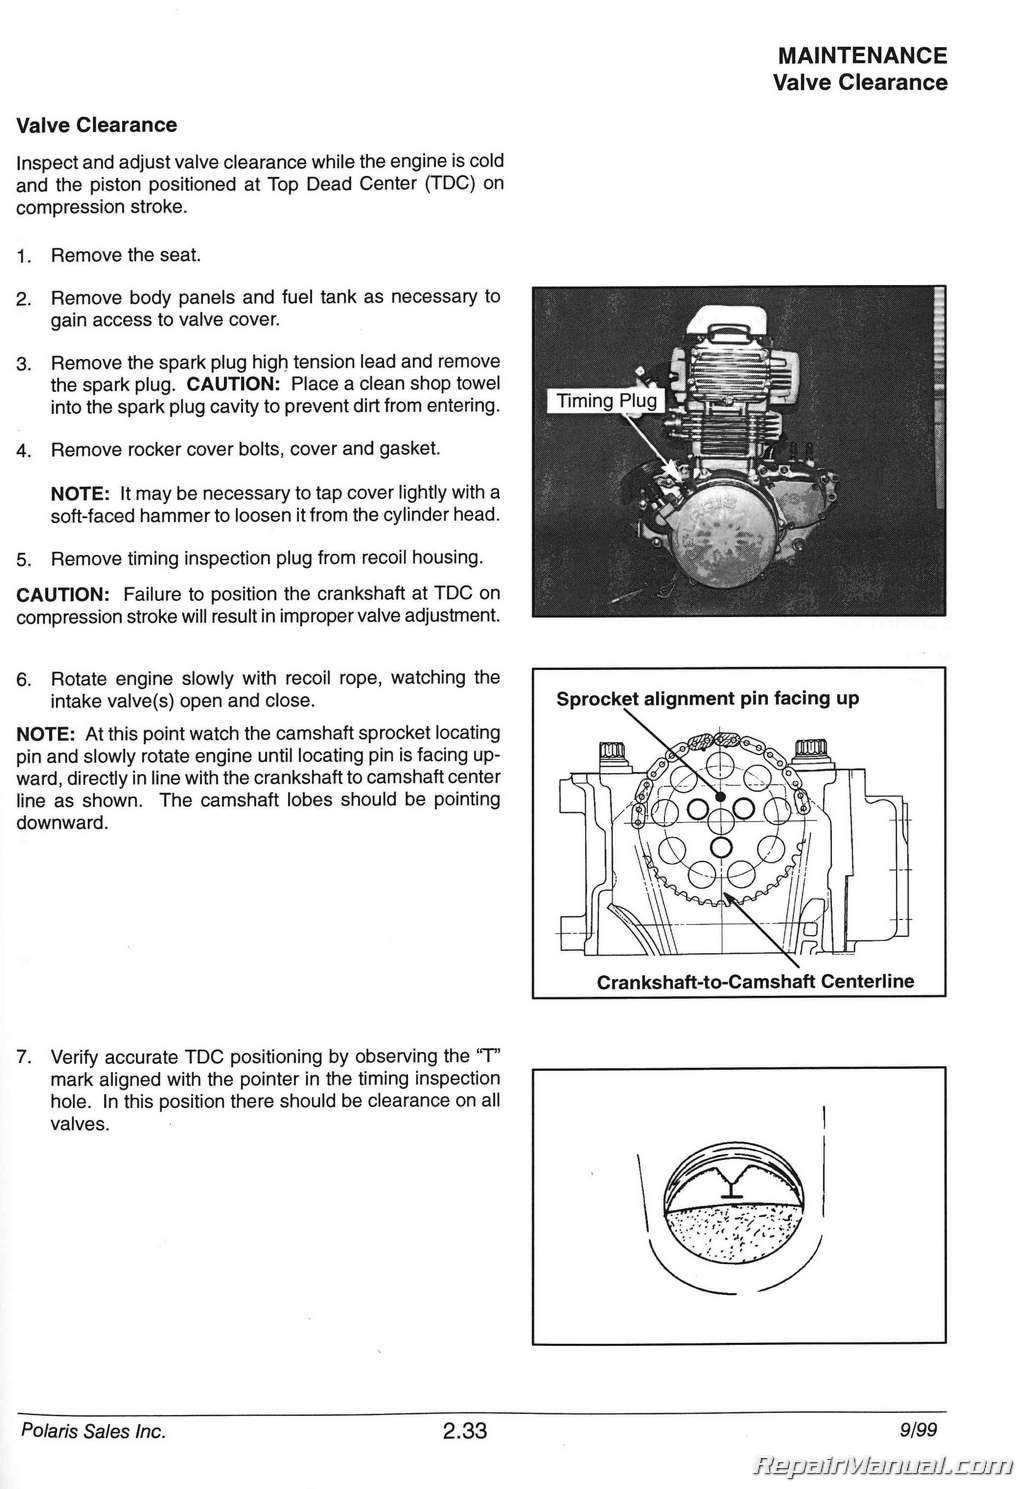 E5e58 Suzuki King Quad 500 Wiring Diagram Wiring Resources